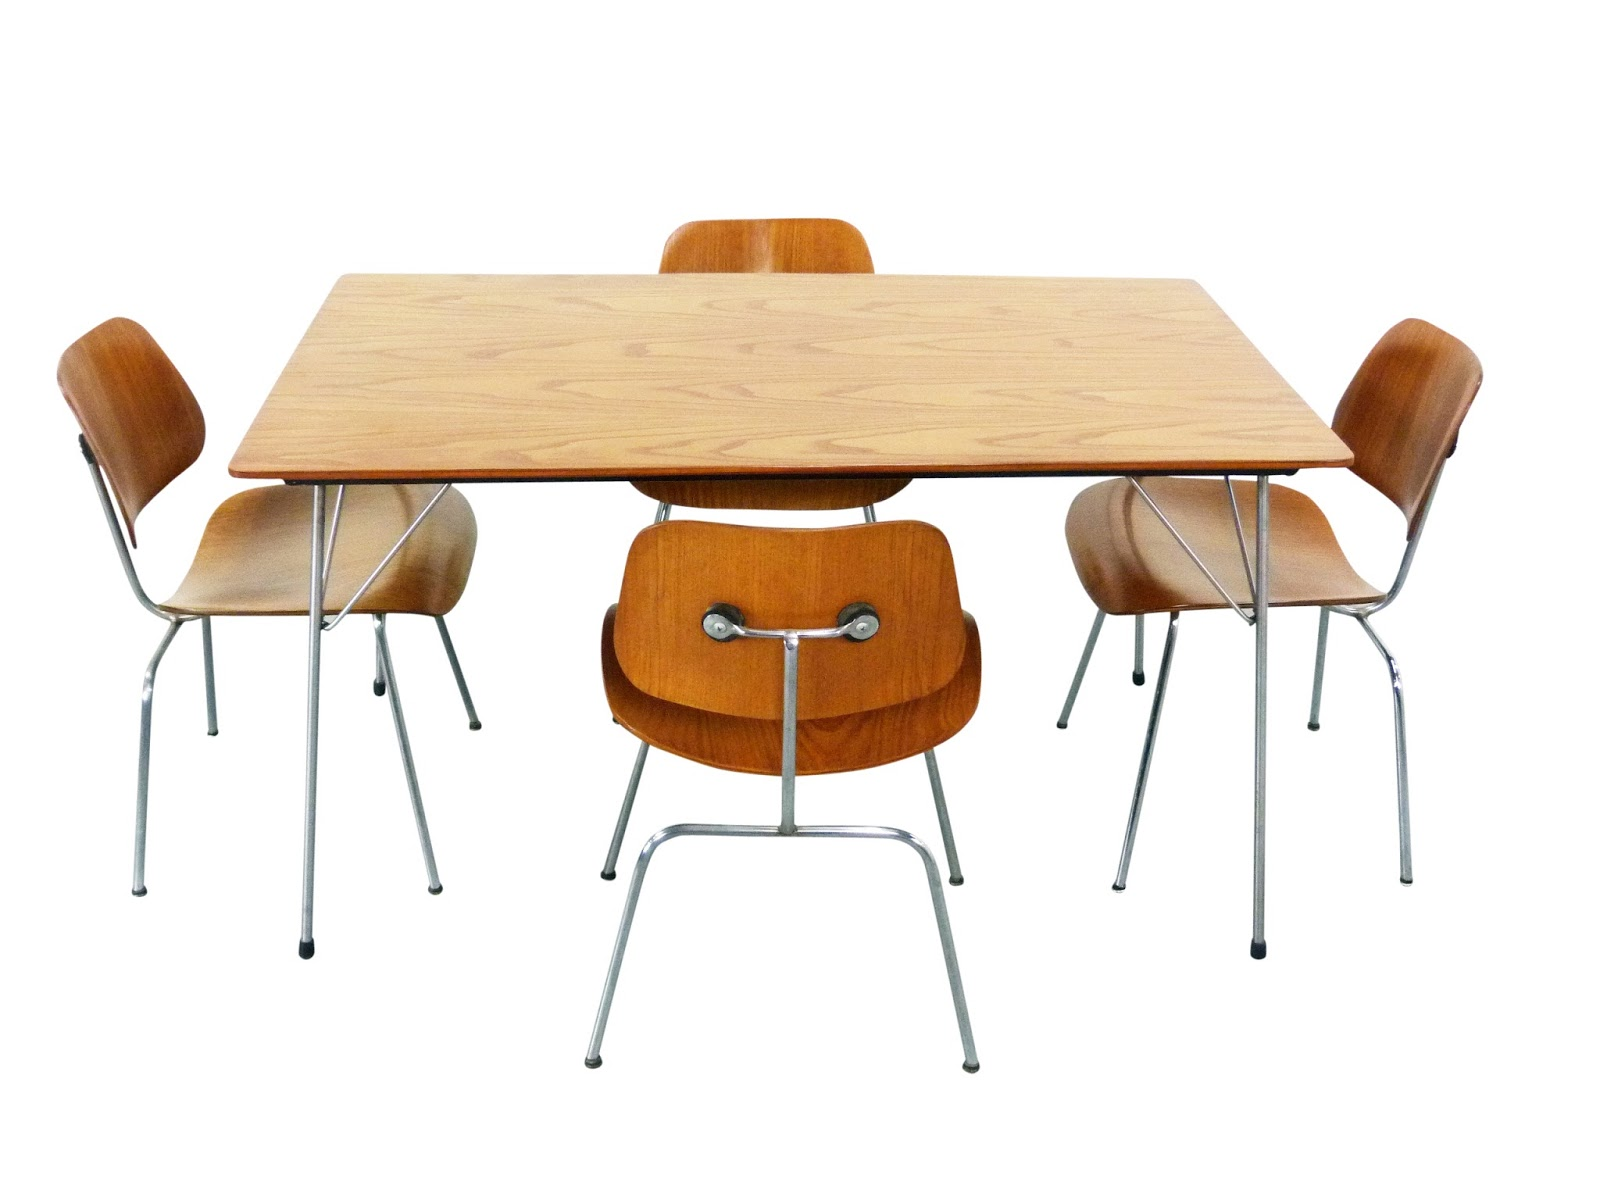 Just In 5 28 15 | Ray U0026 Charles Eames For Evans Product Co DCM Plywood  Chairs And DTM Table | Rare Mid Century Modern Pre Herman Miller